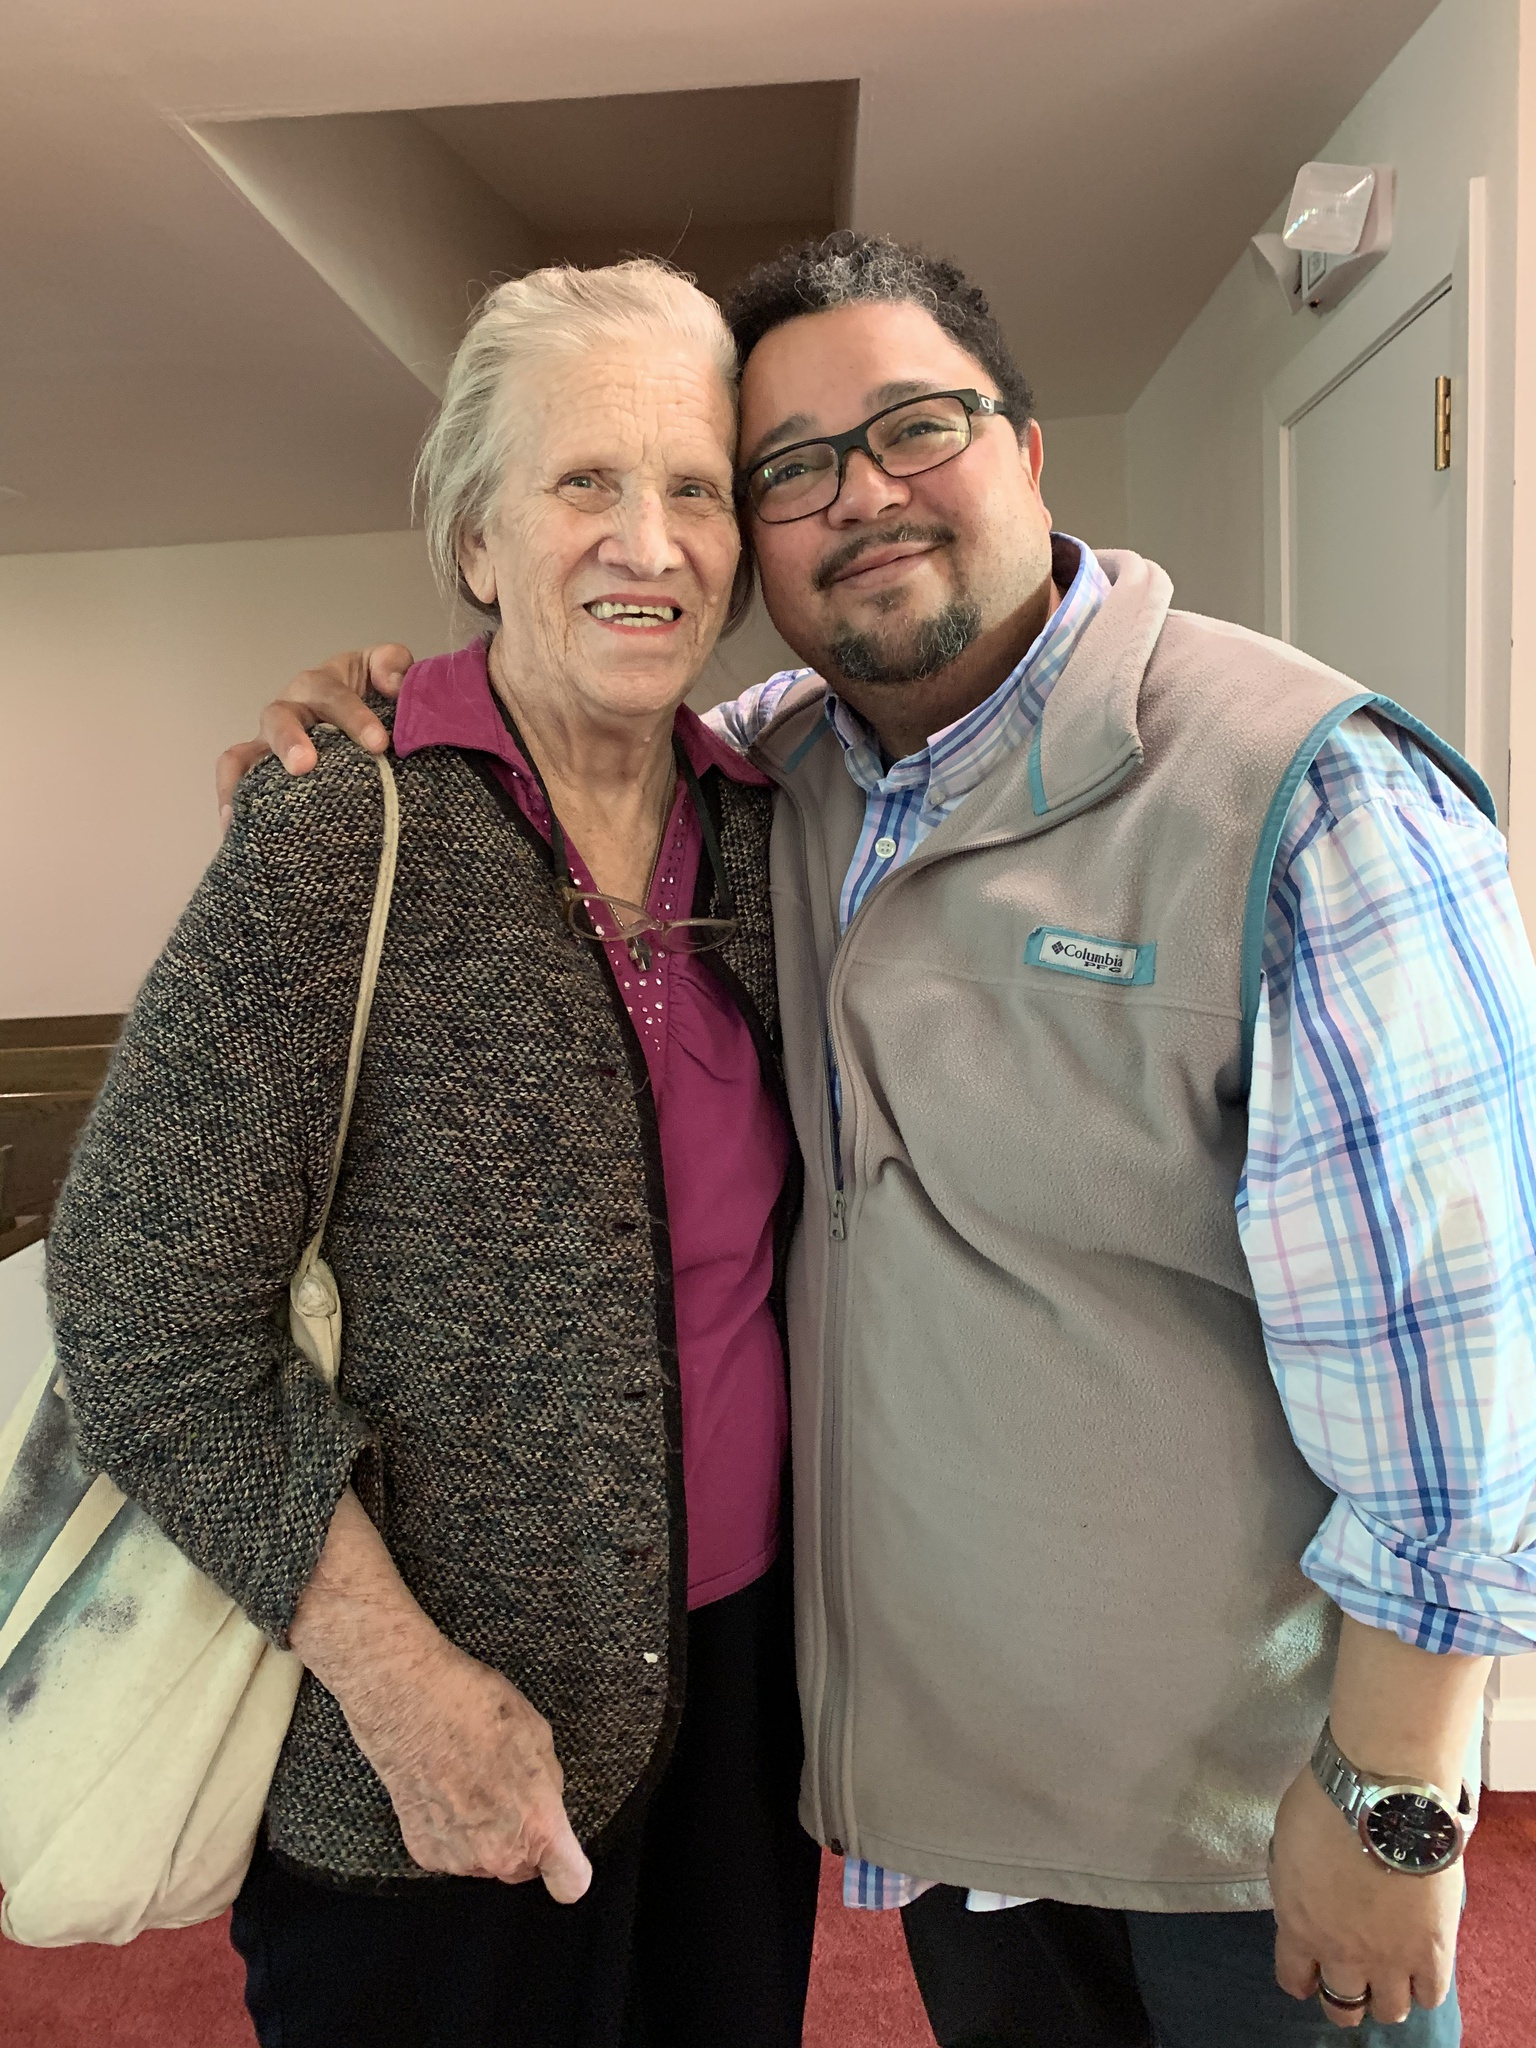 Me and Ms. Sandra, one of the sweetest souls you will ever meet.